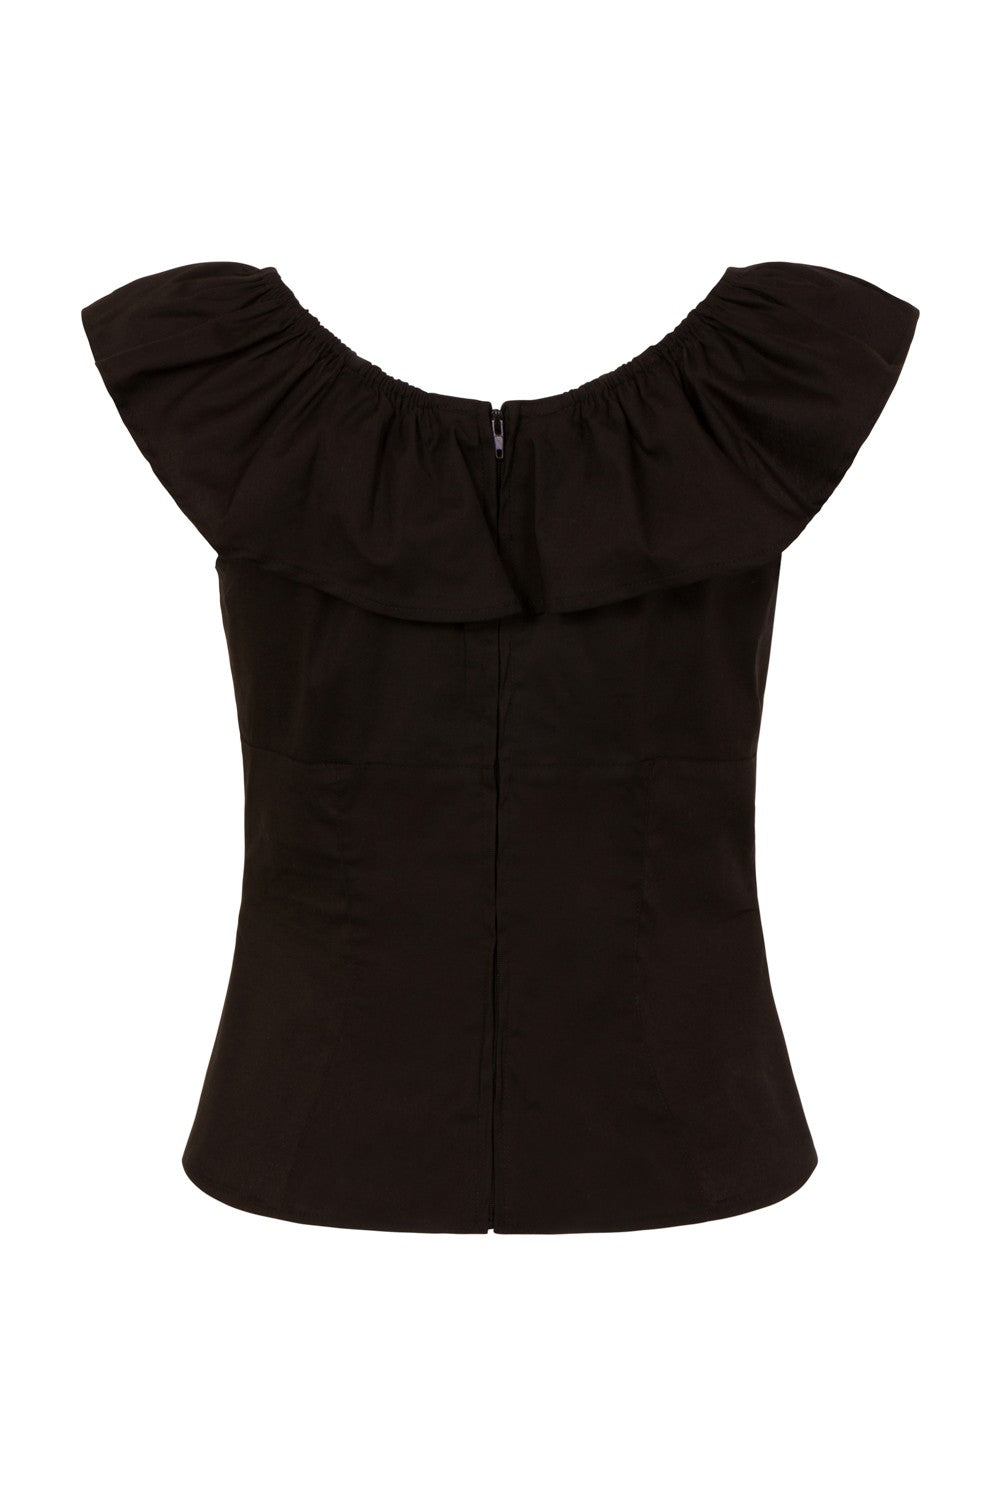 Rio Top in Black by Hell Bunny